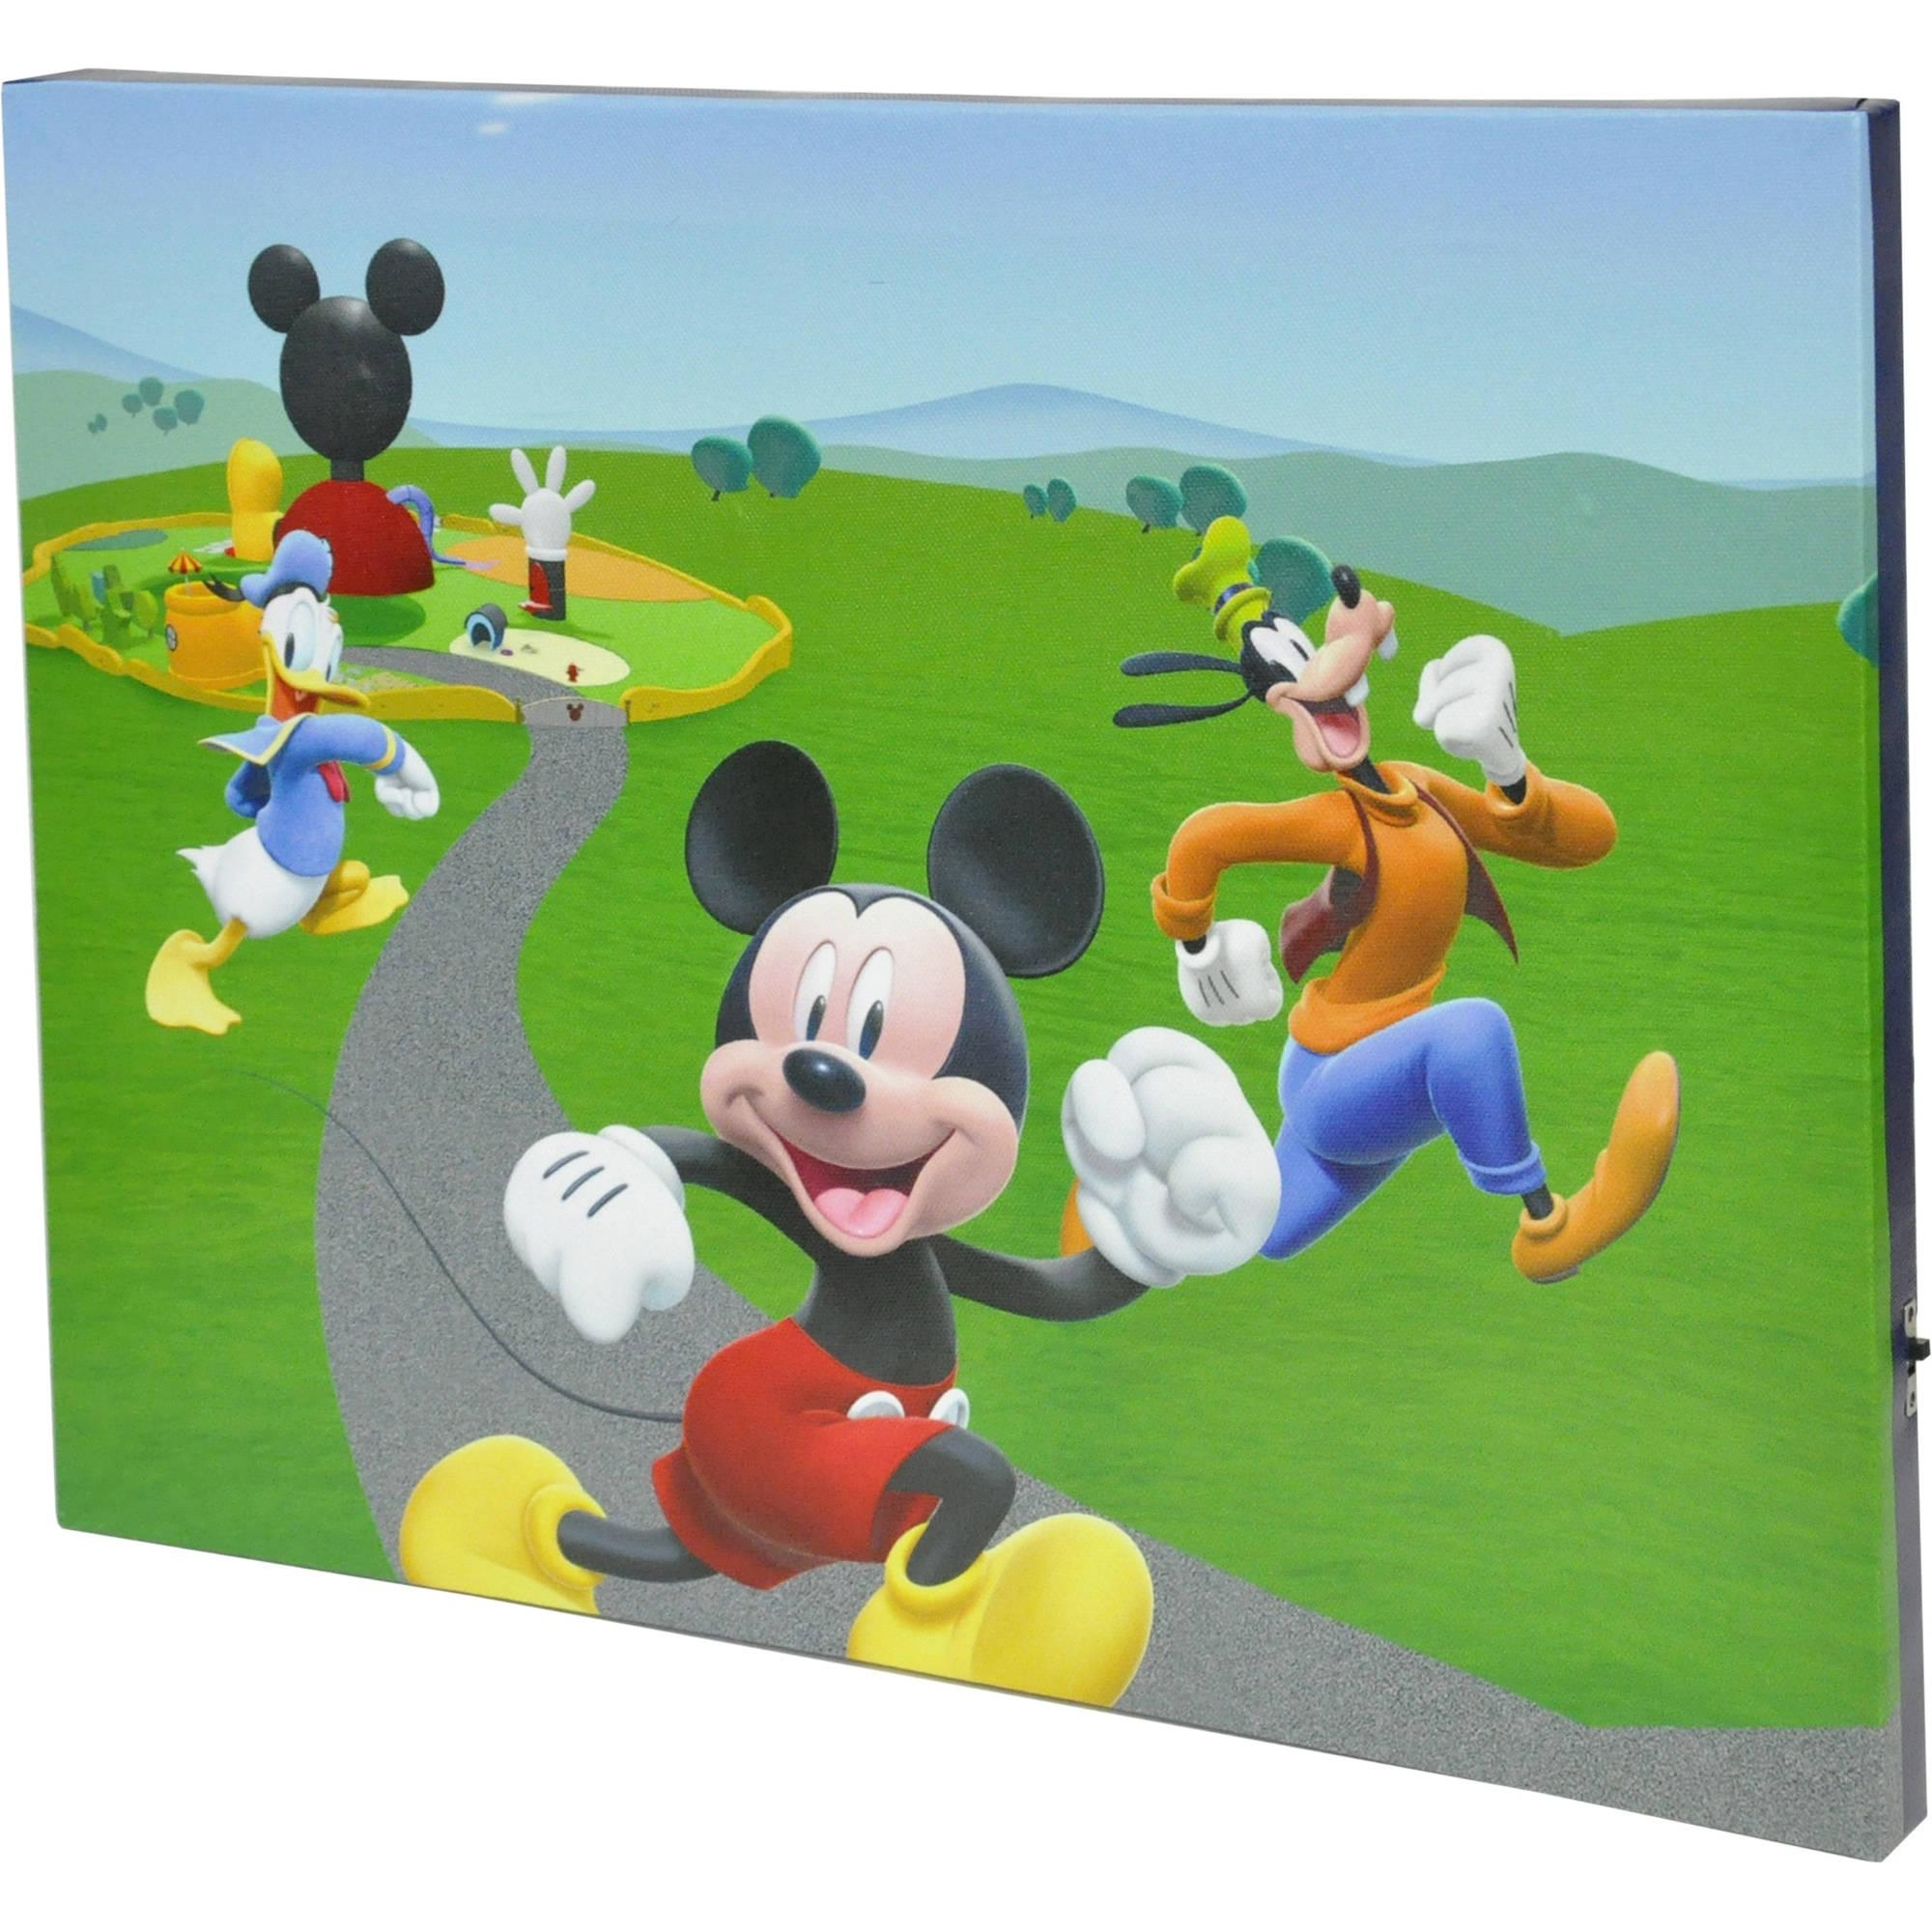 Disney Mickey Mouse Clubhouse Led Light Up Canvas Wall Art Pertaining To Mickey Mouse Clubhouse Wall Art (Image 6 of 20)